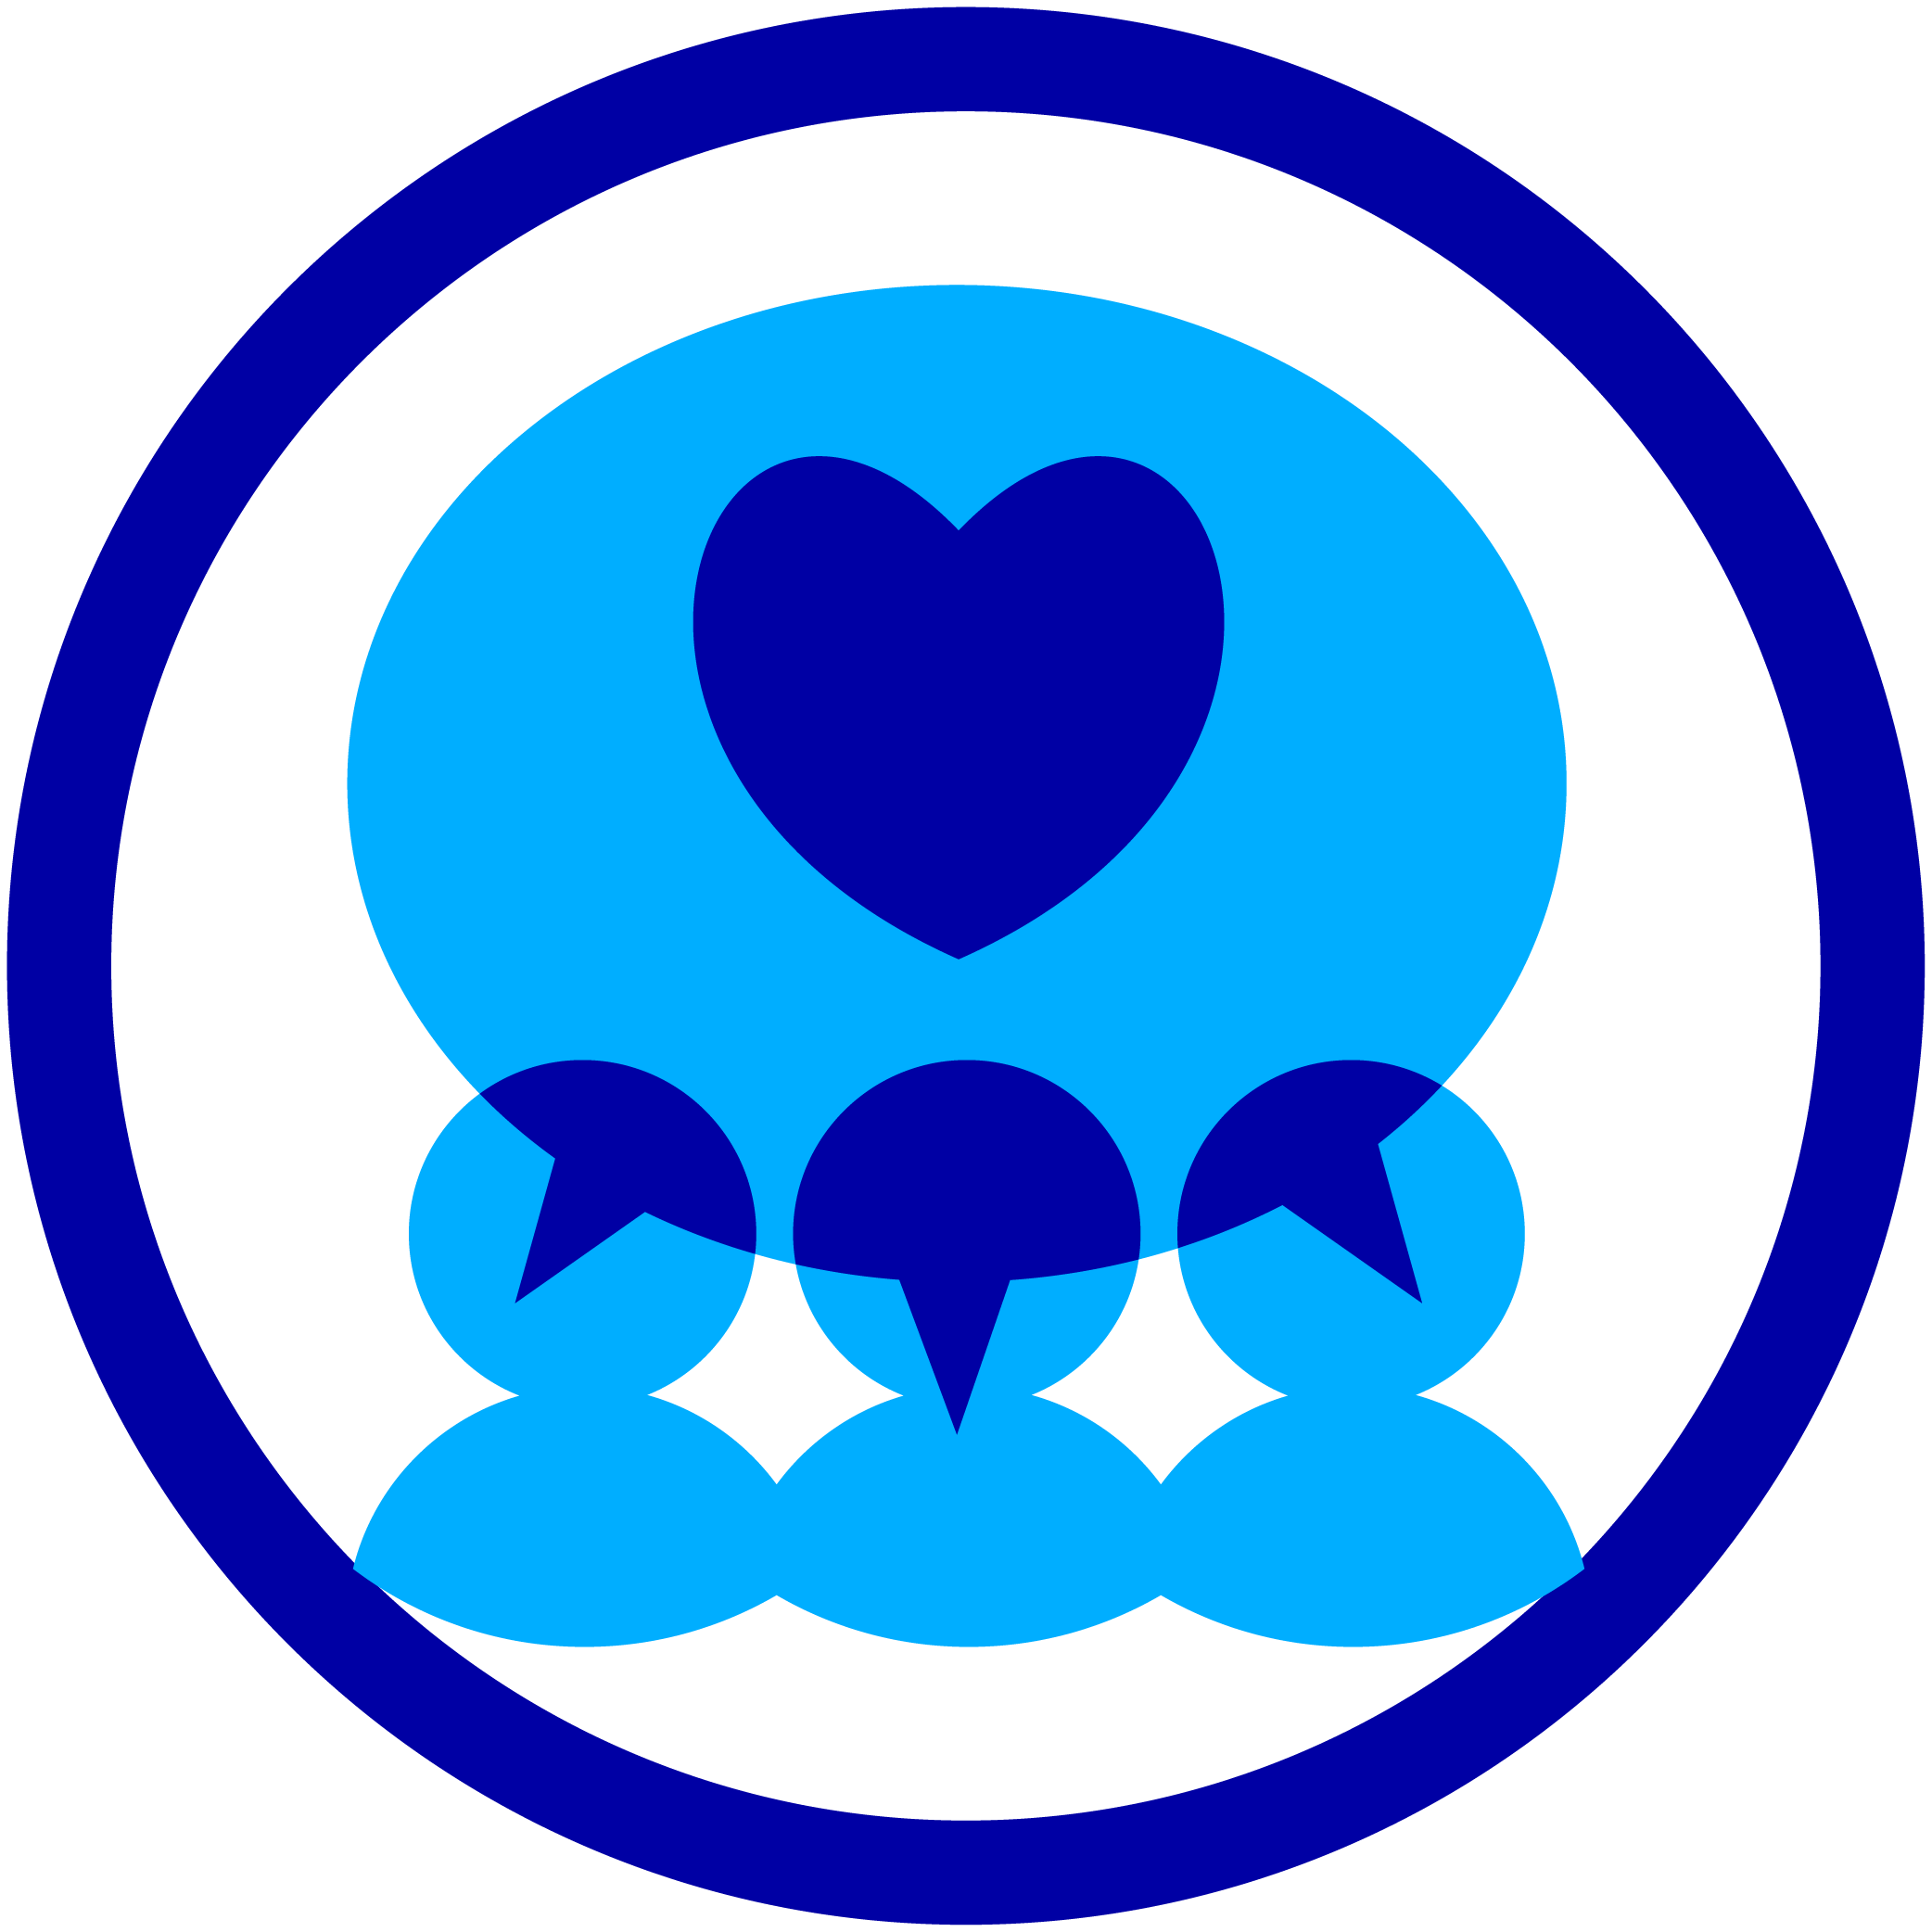 https://jp.fi-group.com/wp-content/uploads/sites/18/2021/02/blue-icons-set_1-54.png